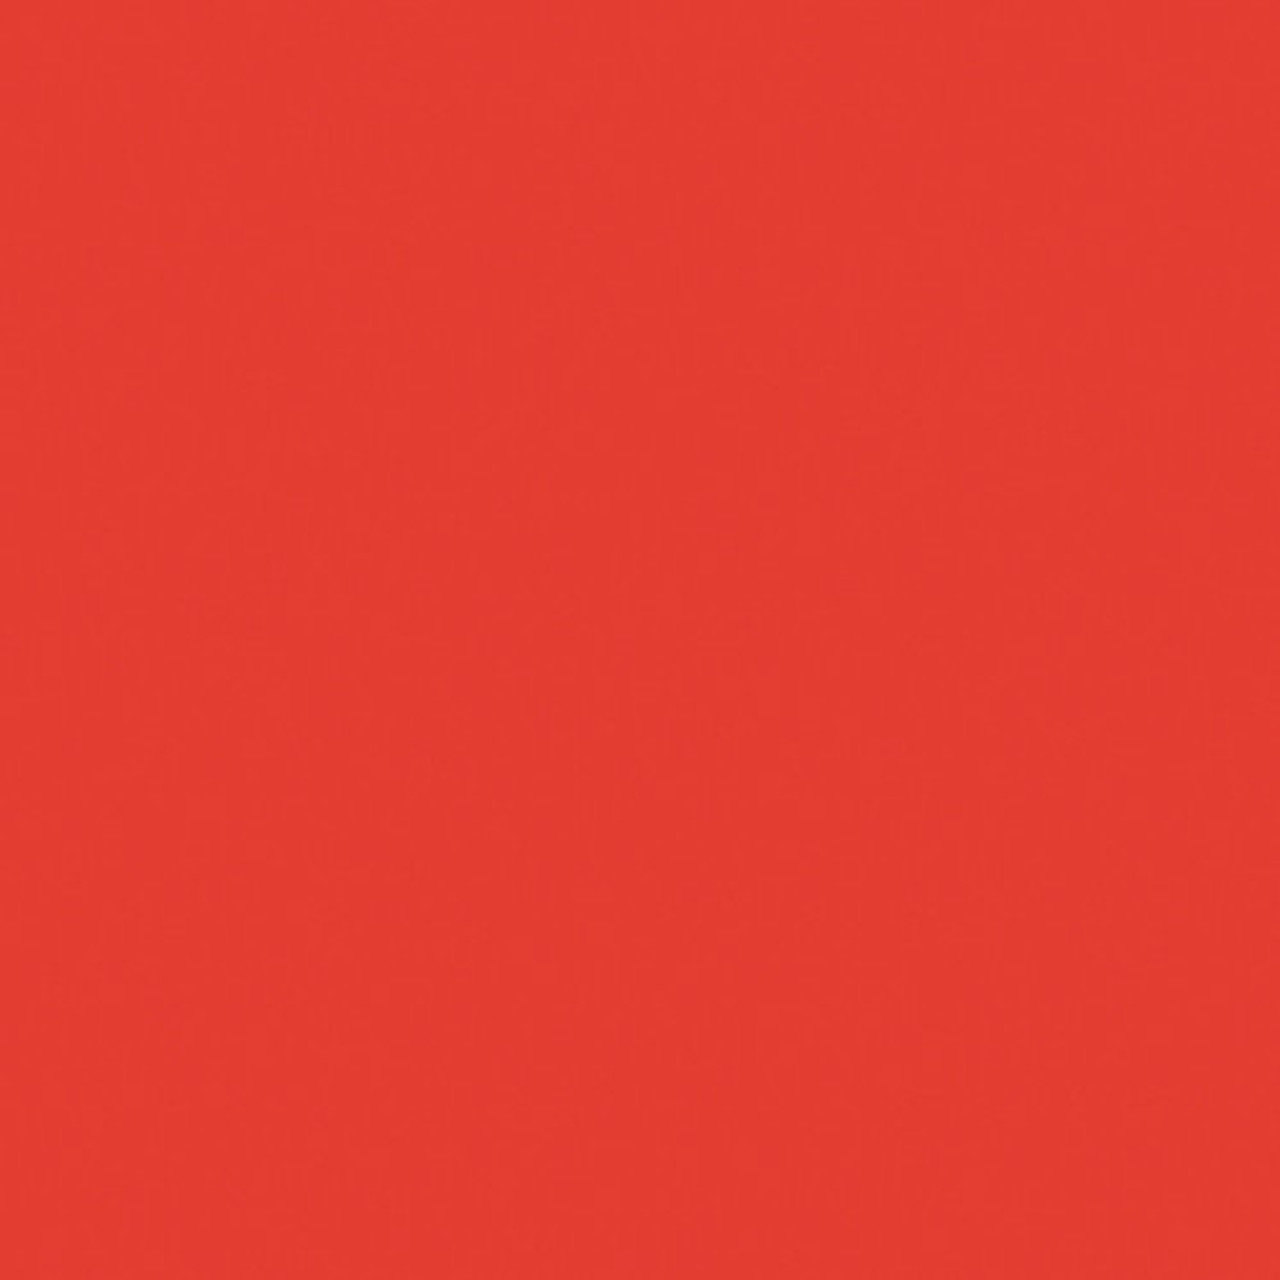 #4660 Rosco Gels Roscolux CalColor 60 Red, 20x24""